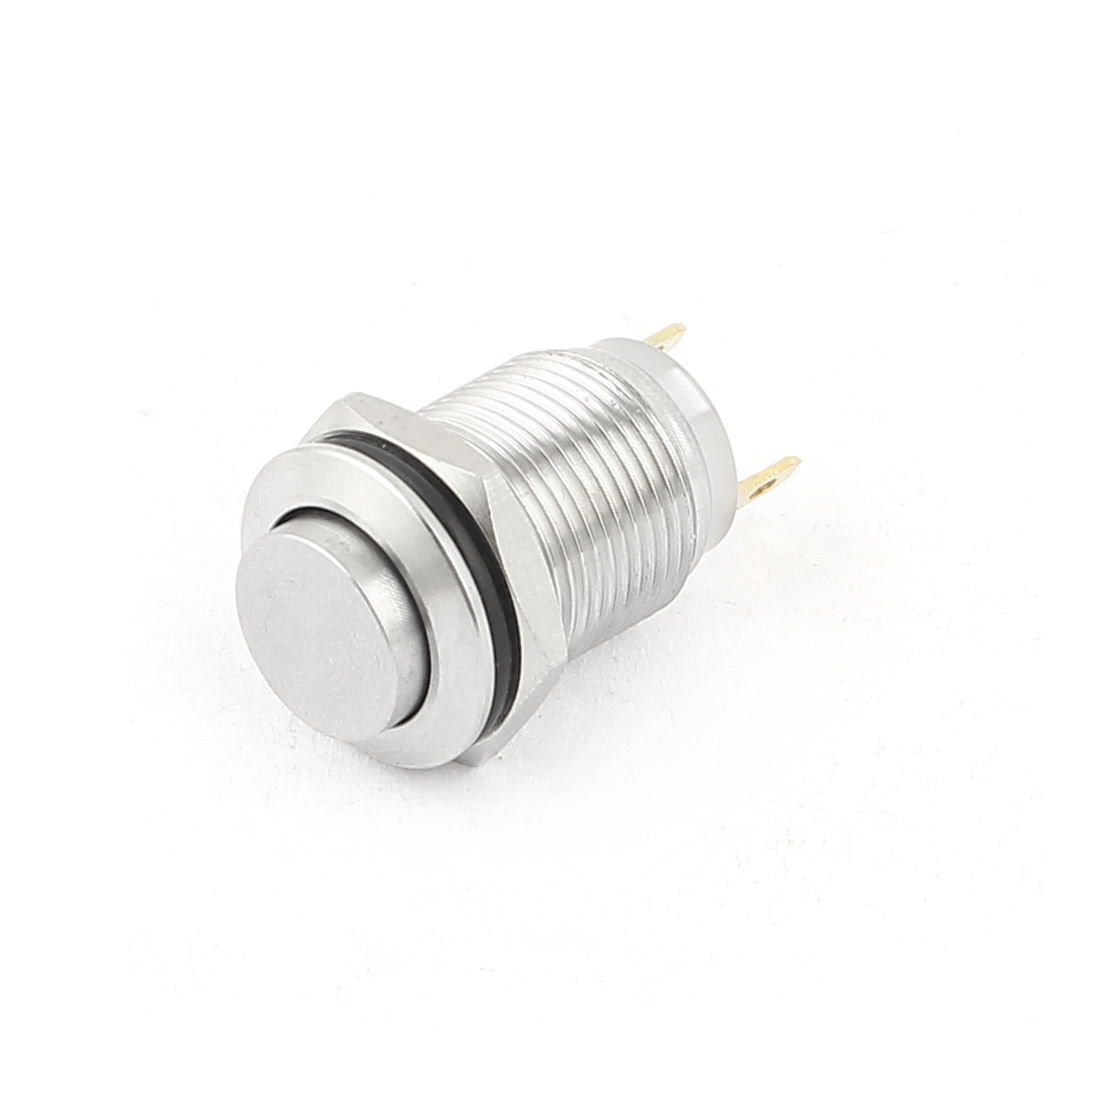 12mm Mounted Thread SPST High Head Momentary Push Button Switch